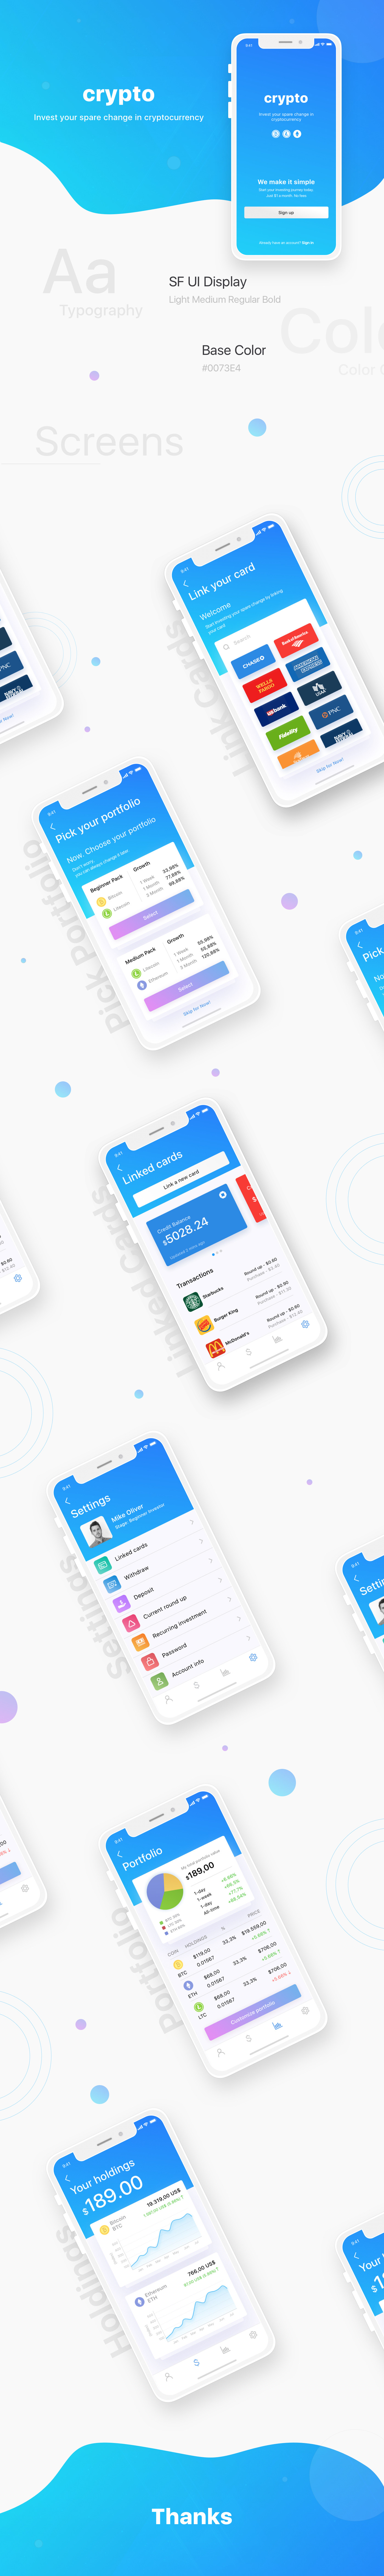 Mobile app iOS App crypto currency UI ux user interface design User Experiance design iphone app